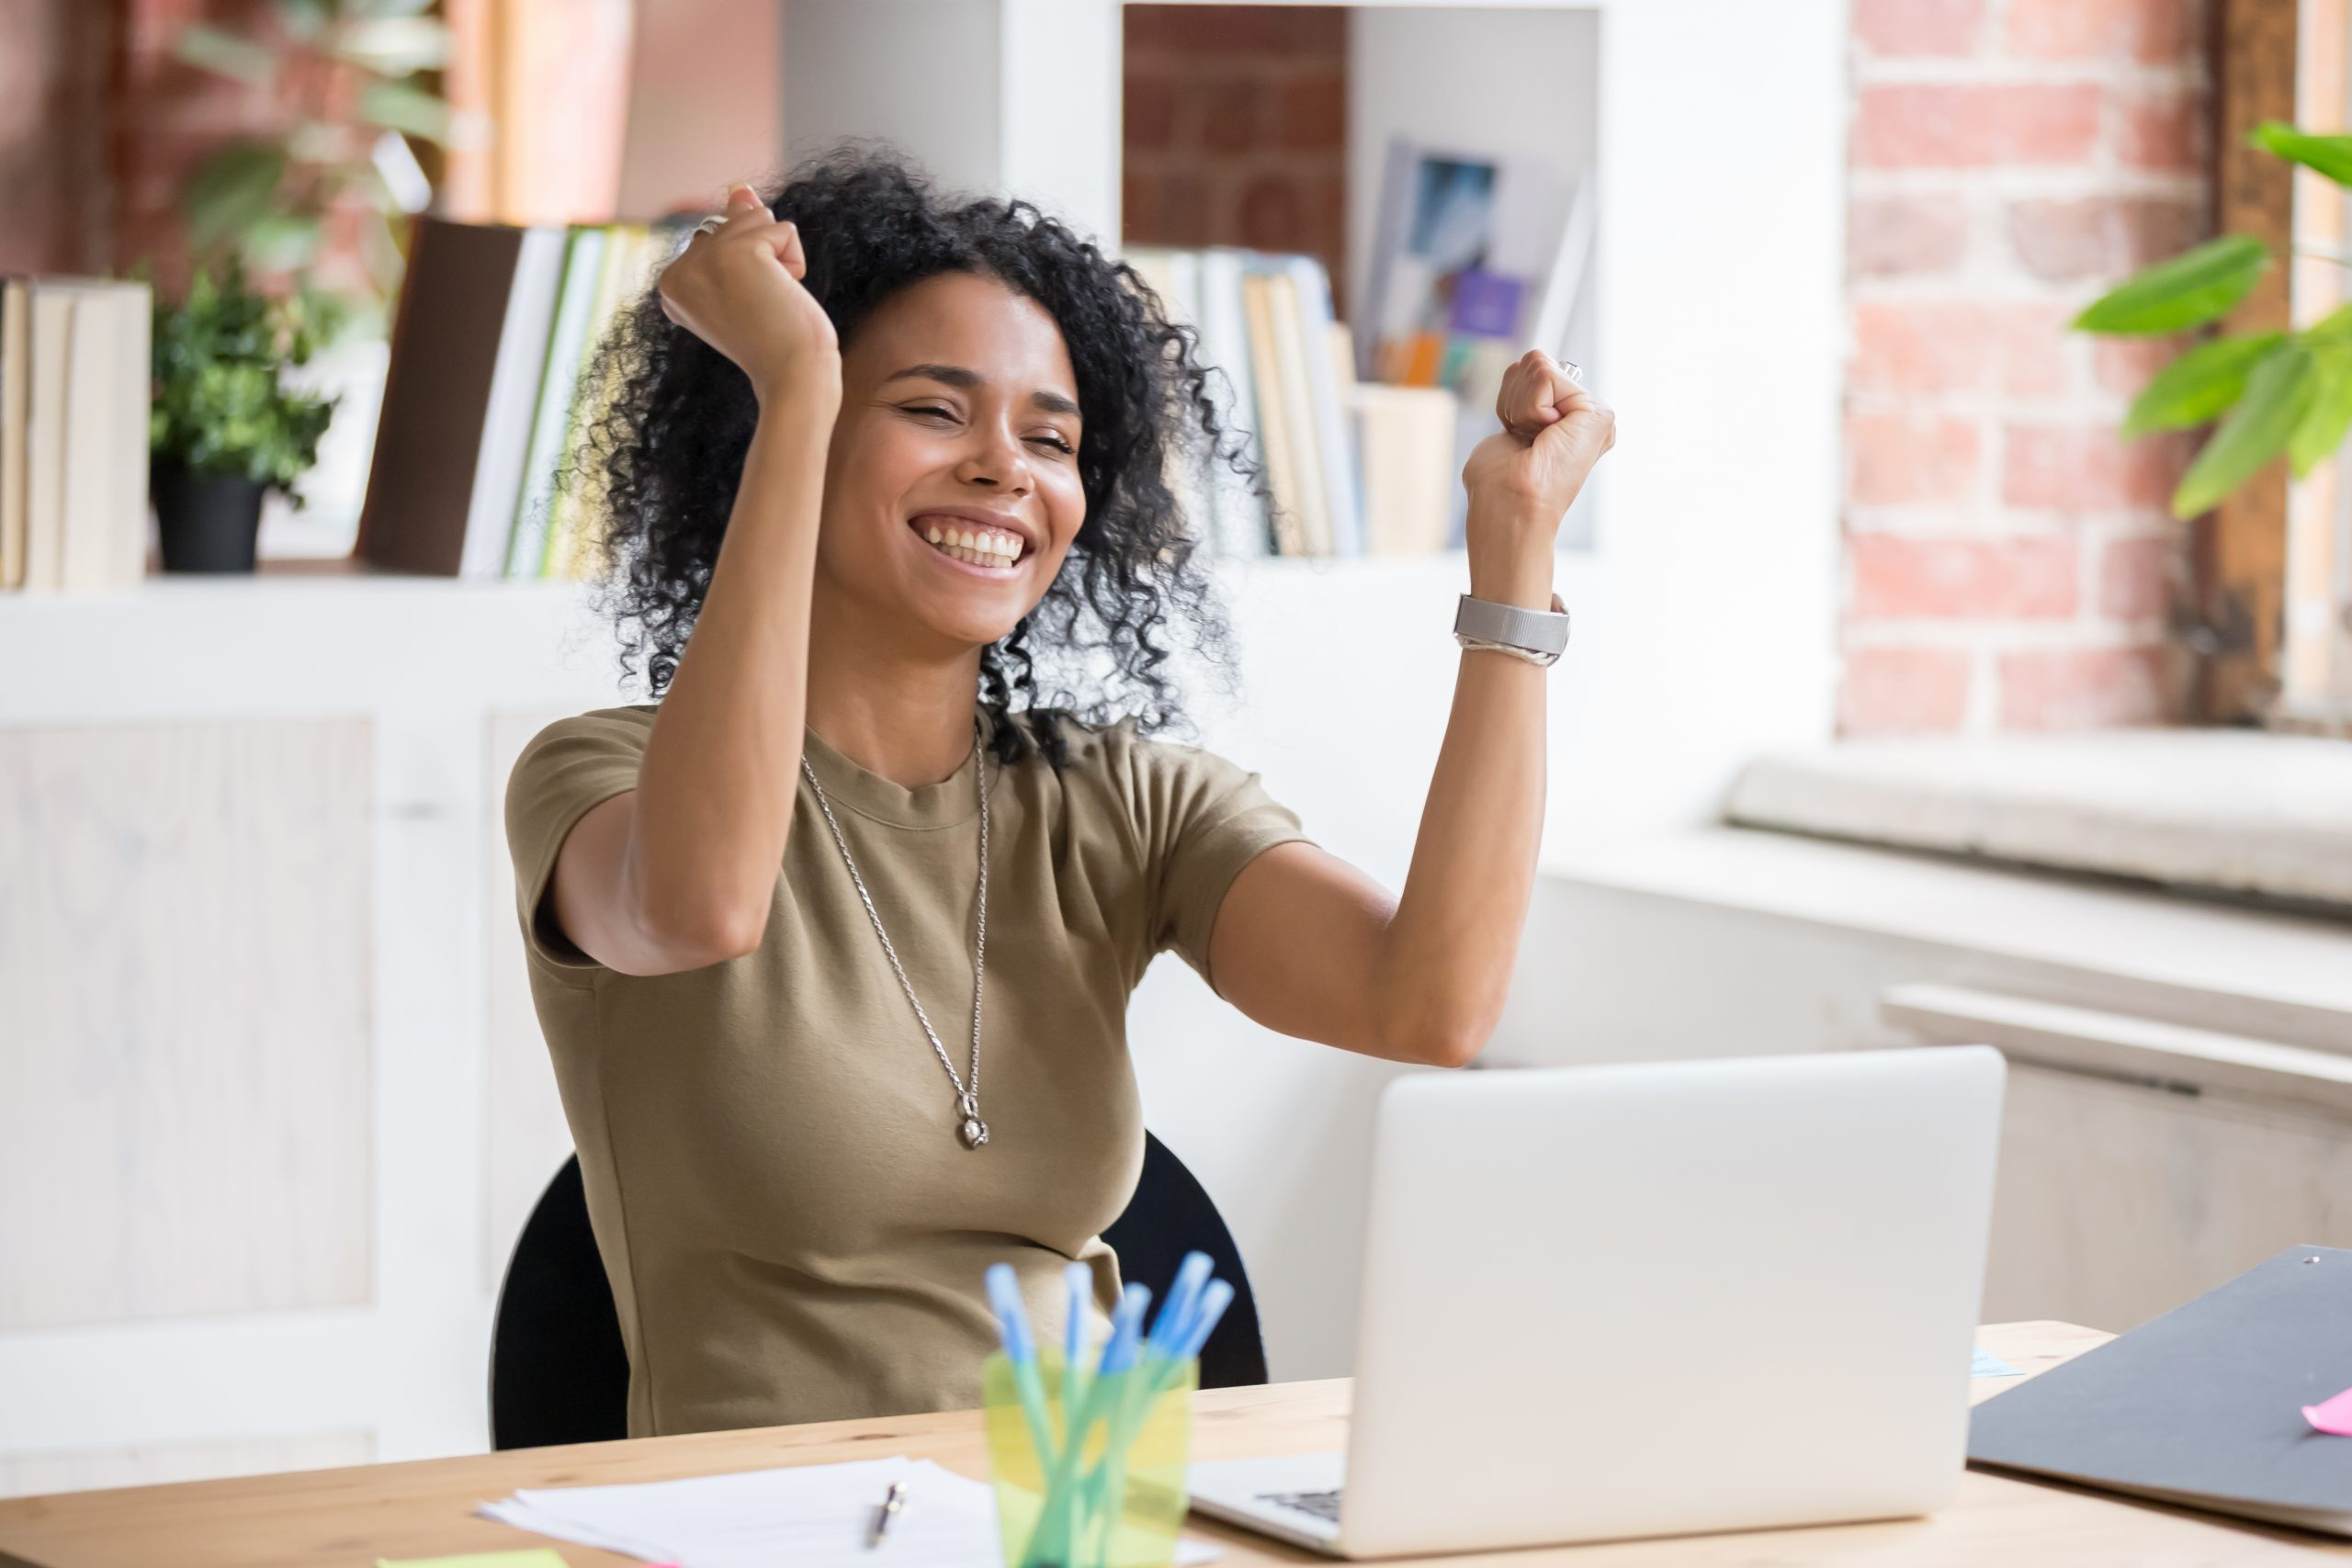 A young woman seated at a computer in a modern office setting raises her hands in celebration